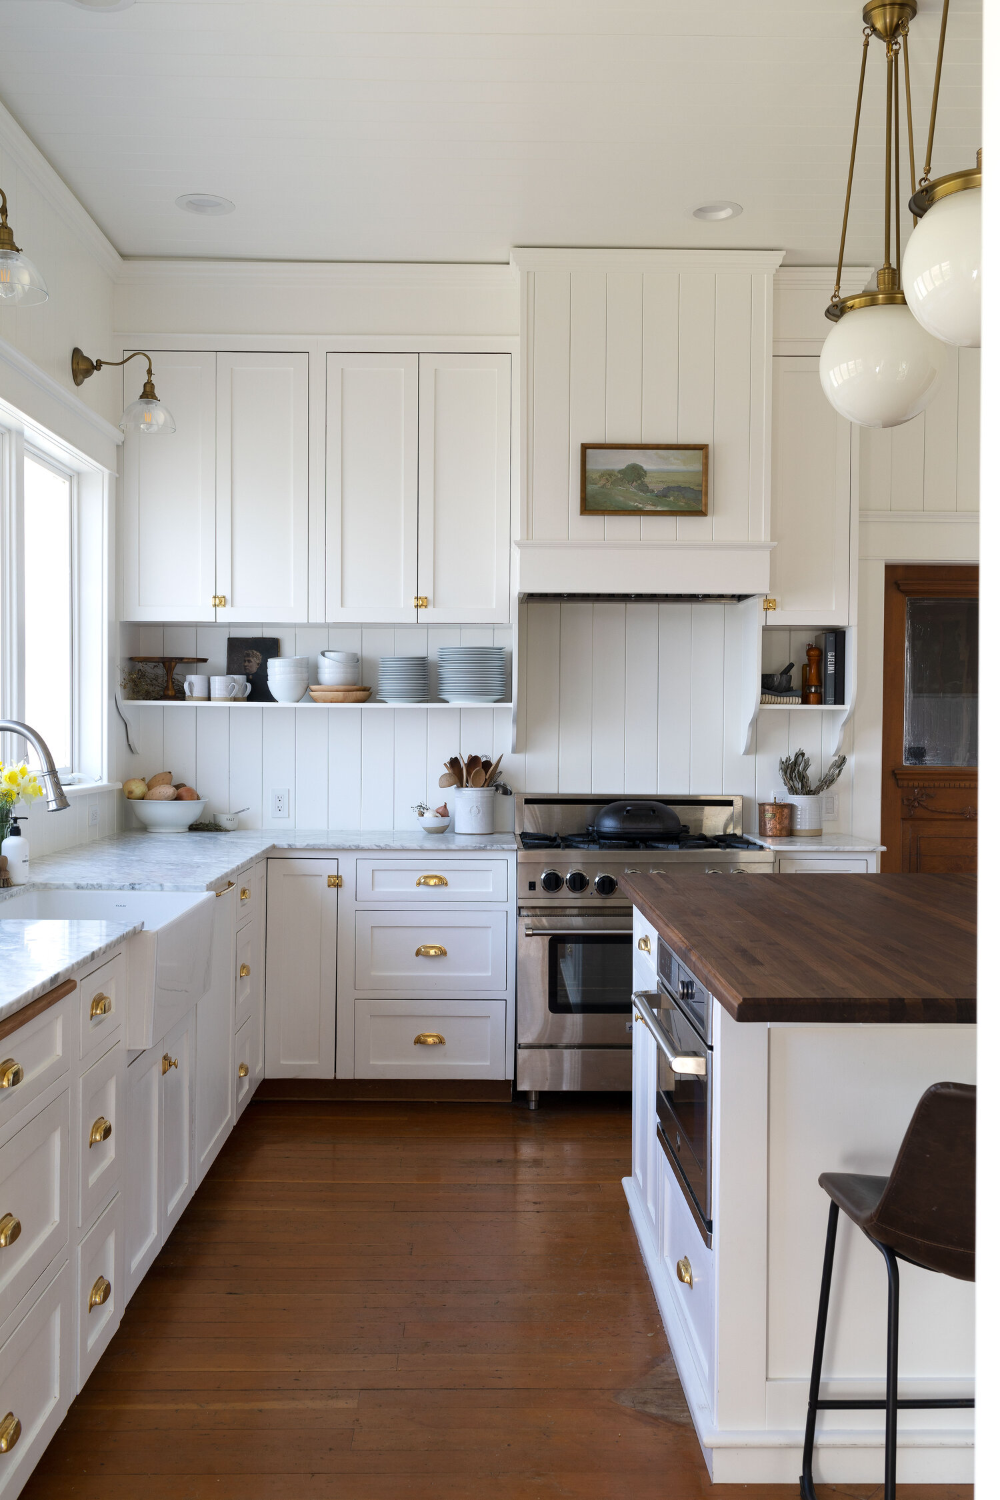 Diy How To Install Vertical Tongue And Groove Paneling The Grit And Polish In 2020 Kitchen Renovation Kitchen Remodel Tongue And Groove Panelling